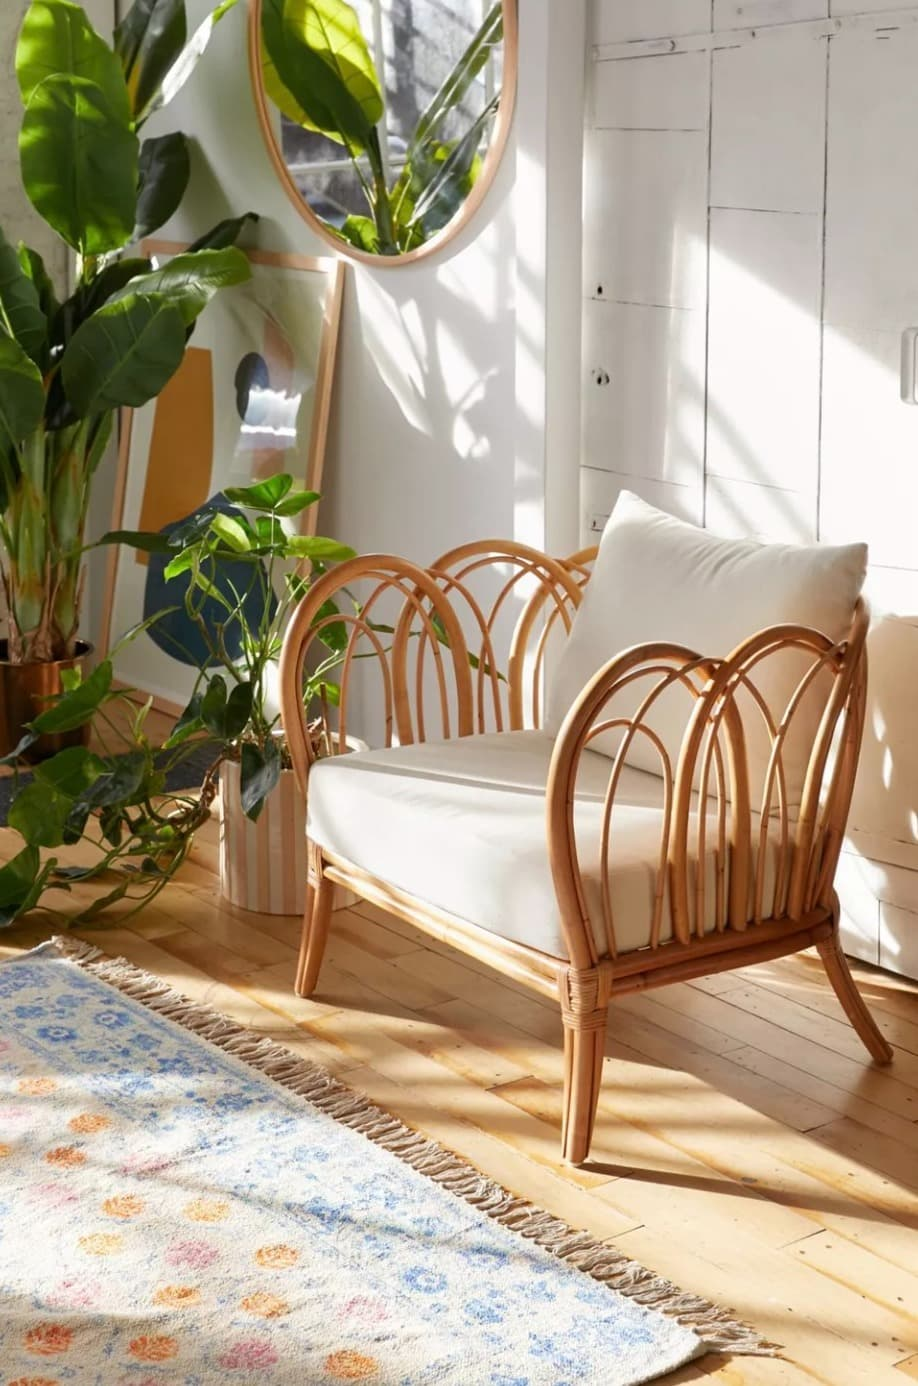 Add a little Natural Texture with this Rattan Chair